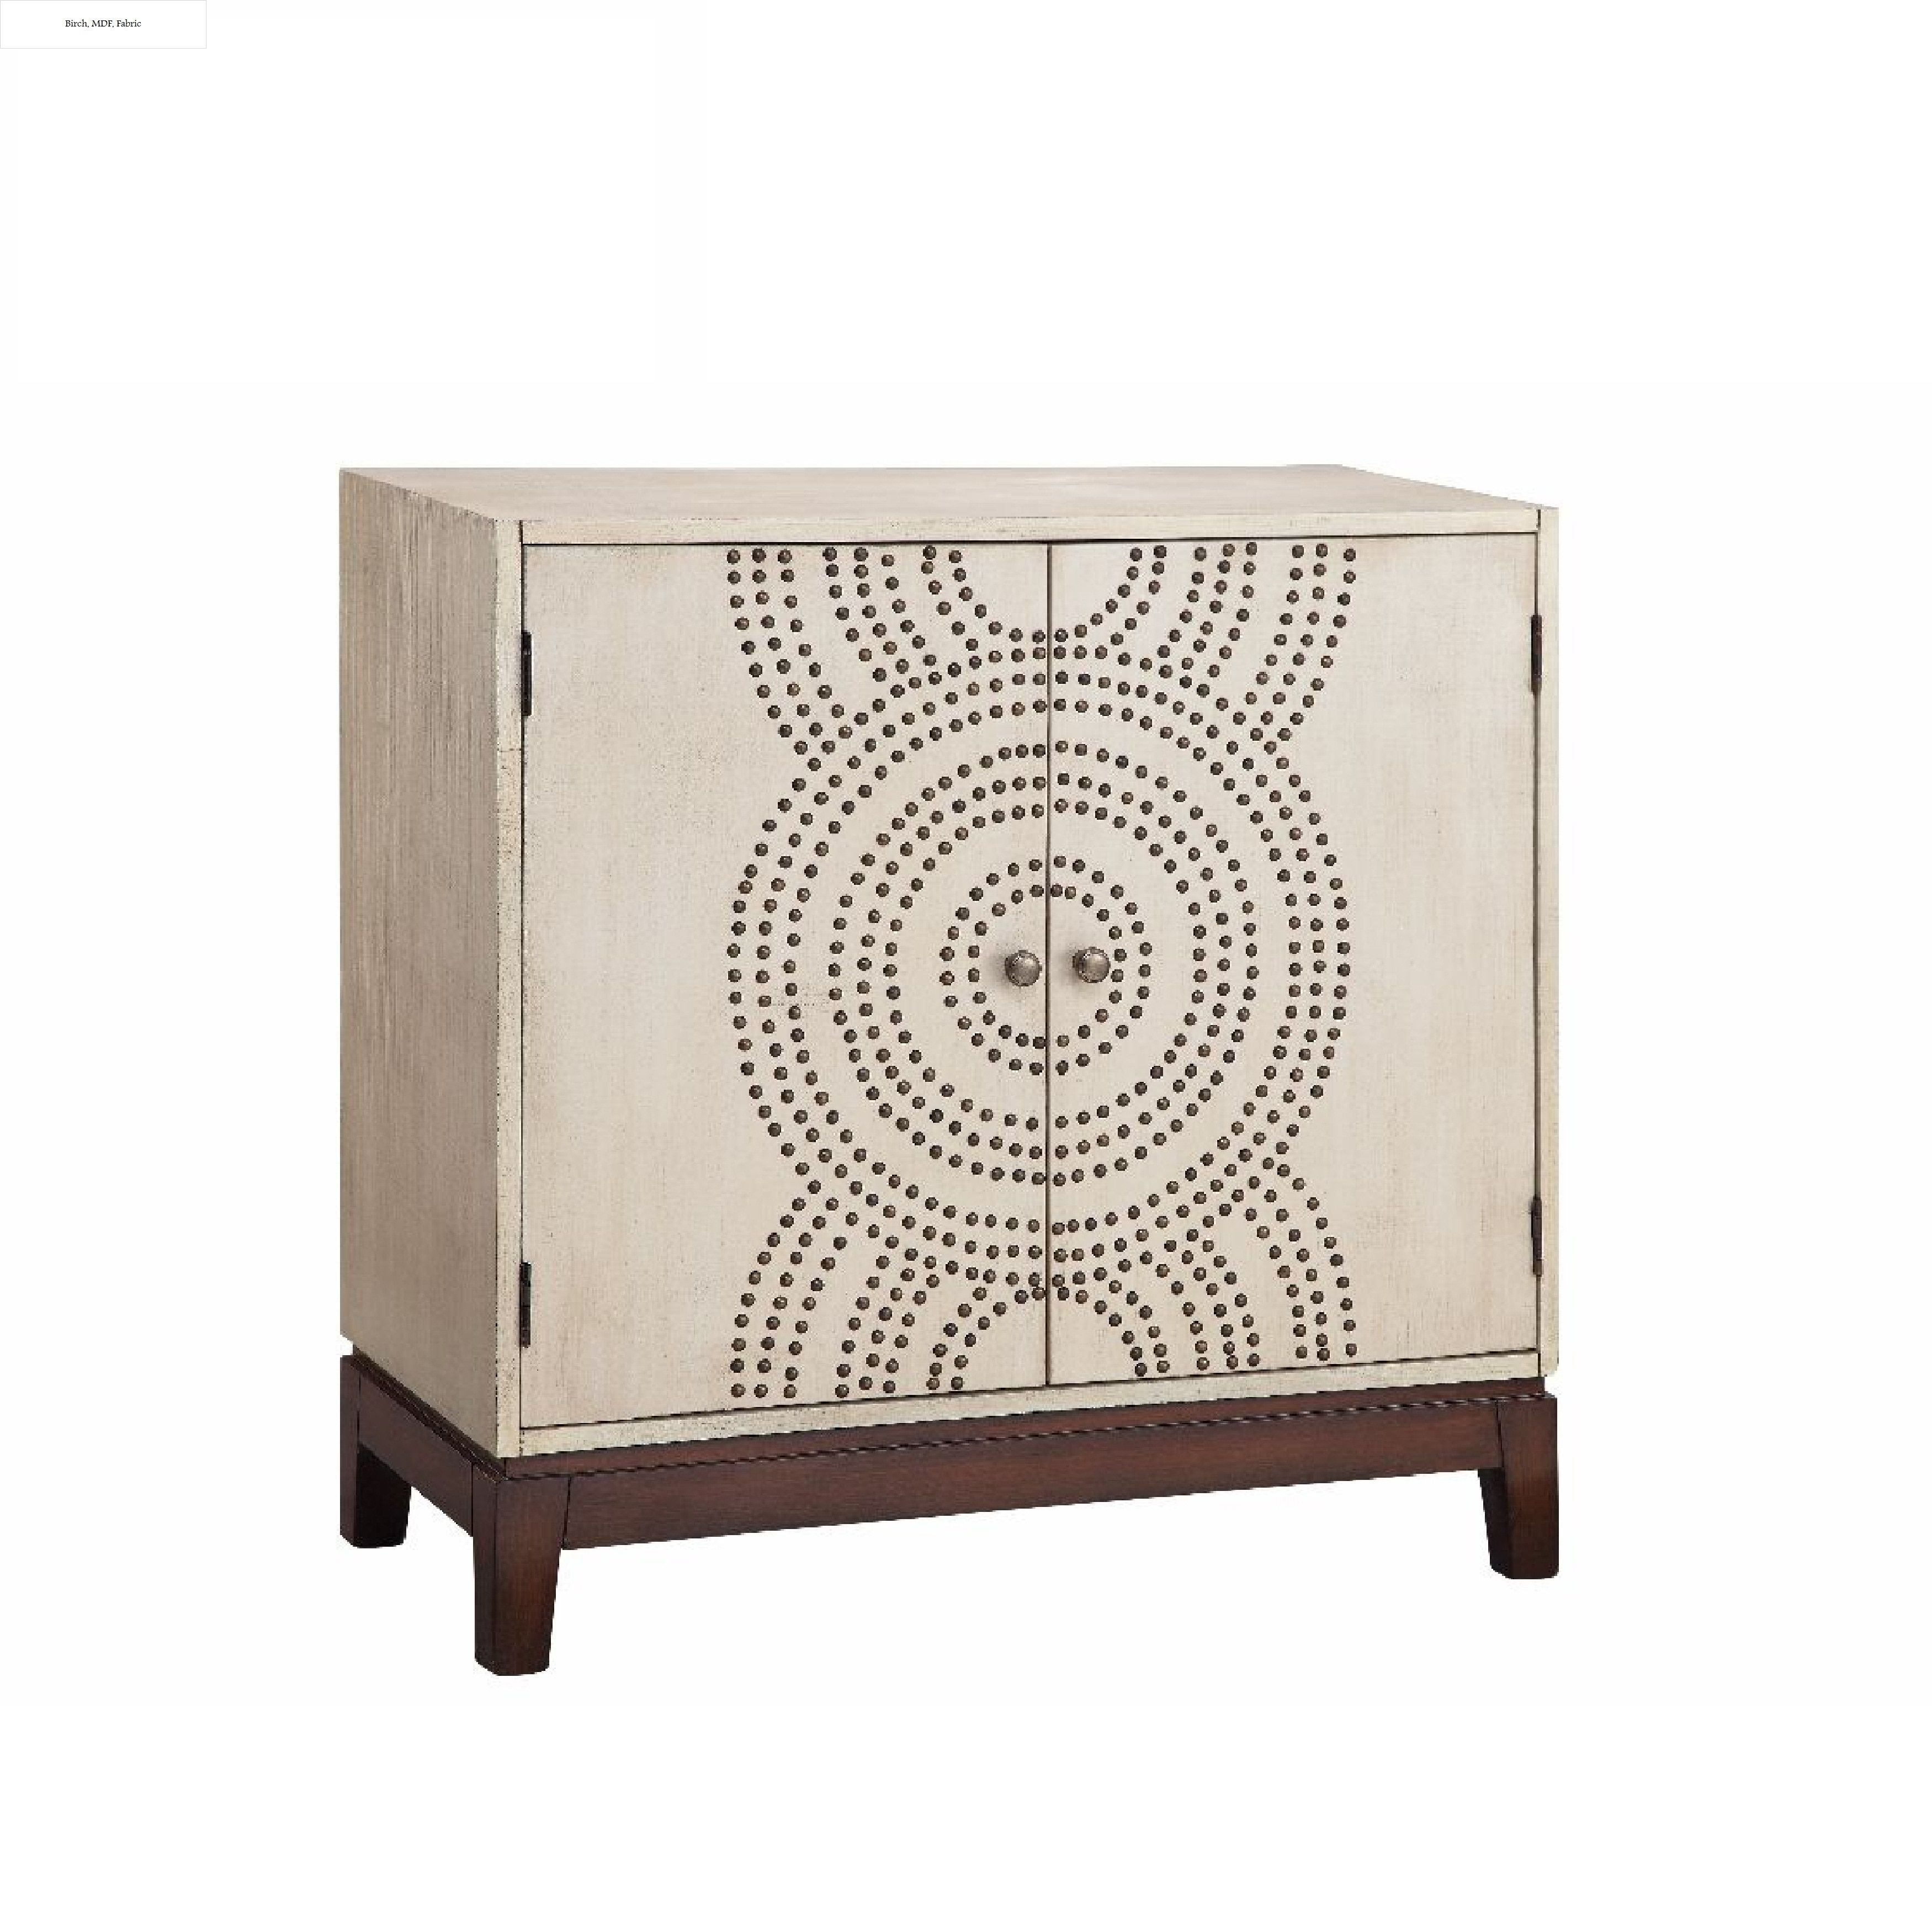 target for white mirrors mirrored red table washable accent rugs bedroom chests square light cabinets chest kitchen black cabinet bathroom small lamps and throw pillows dressers